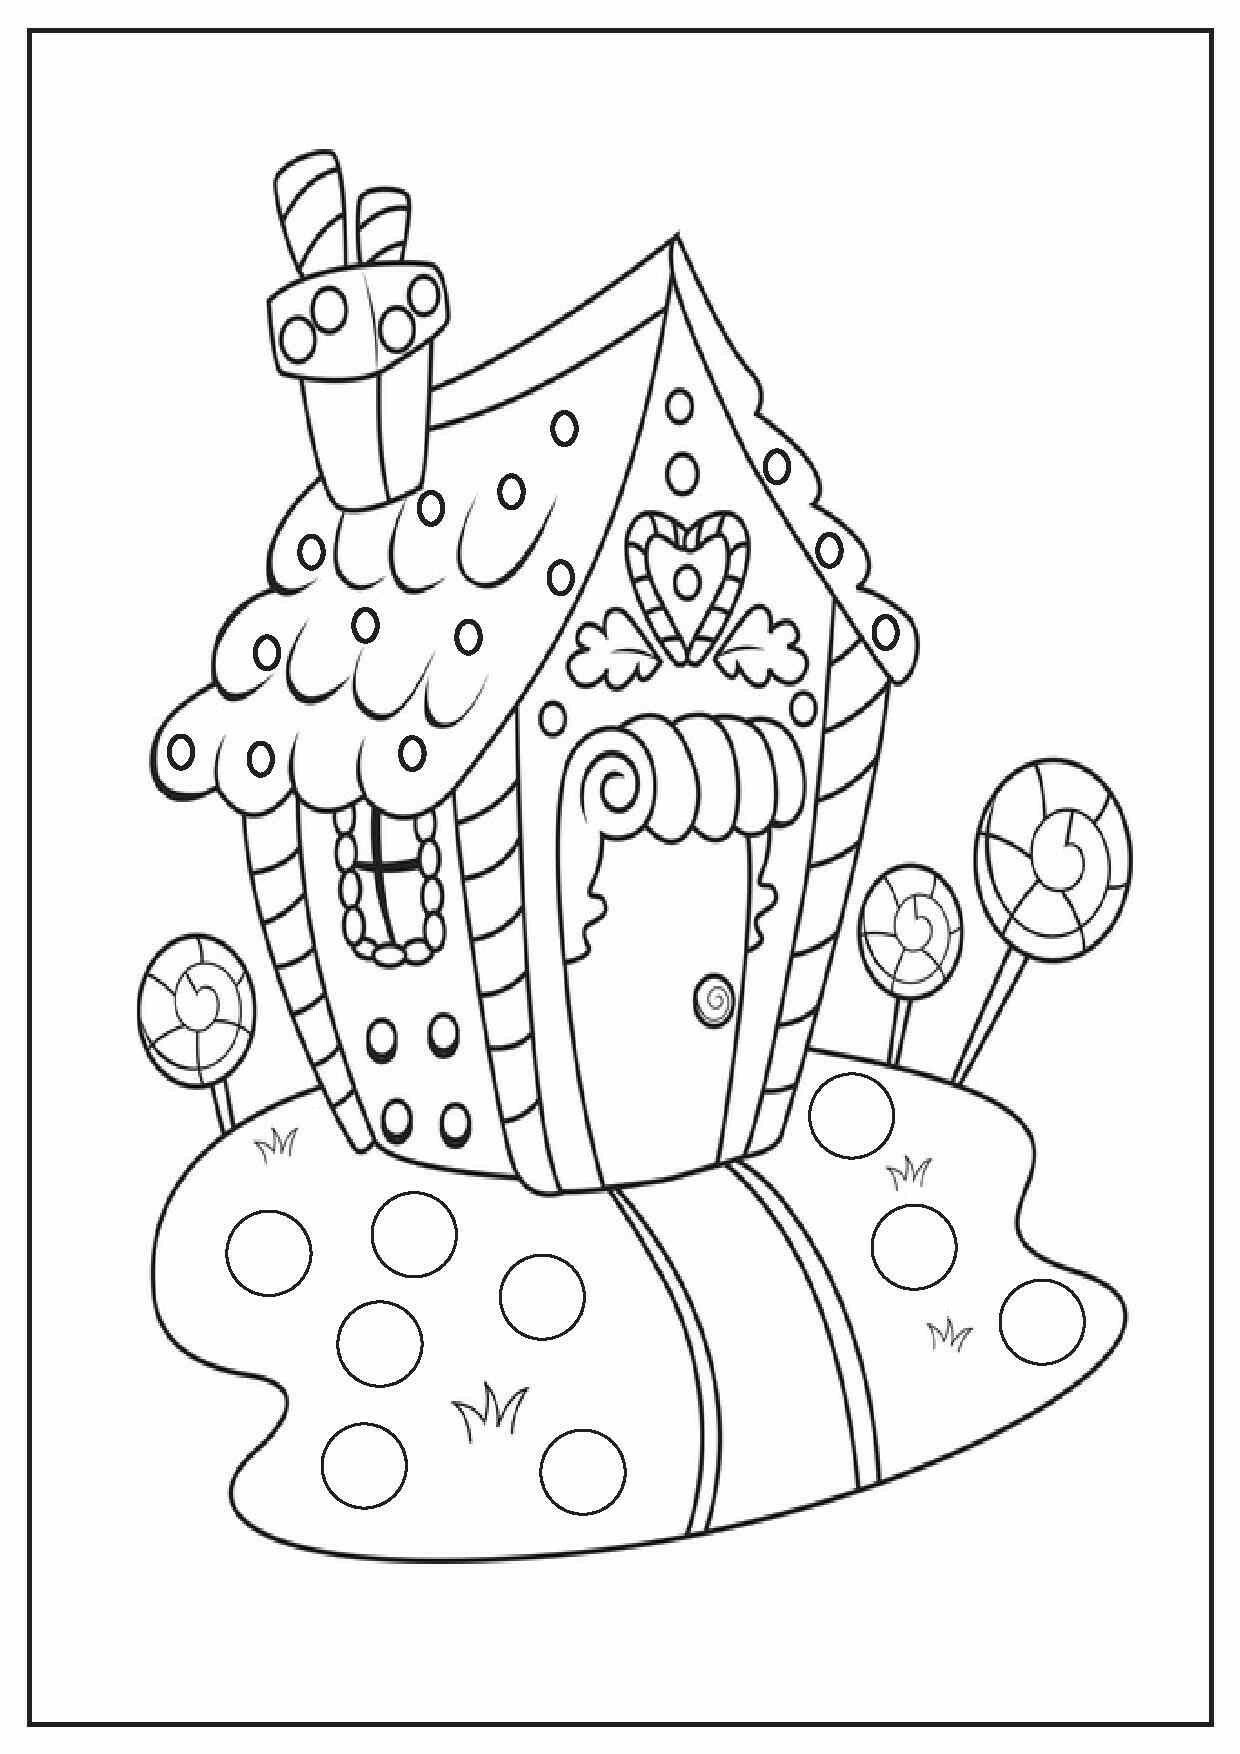 47+ Christmas reindeer coloring pages pdf ideas